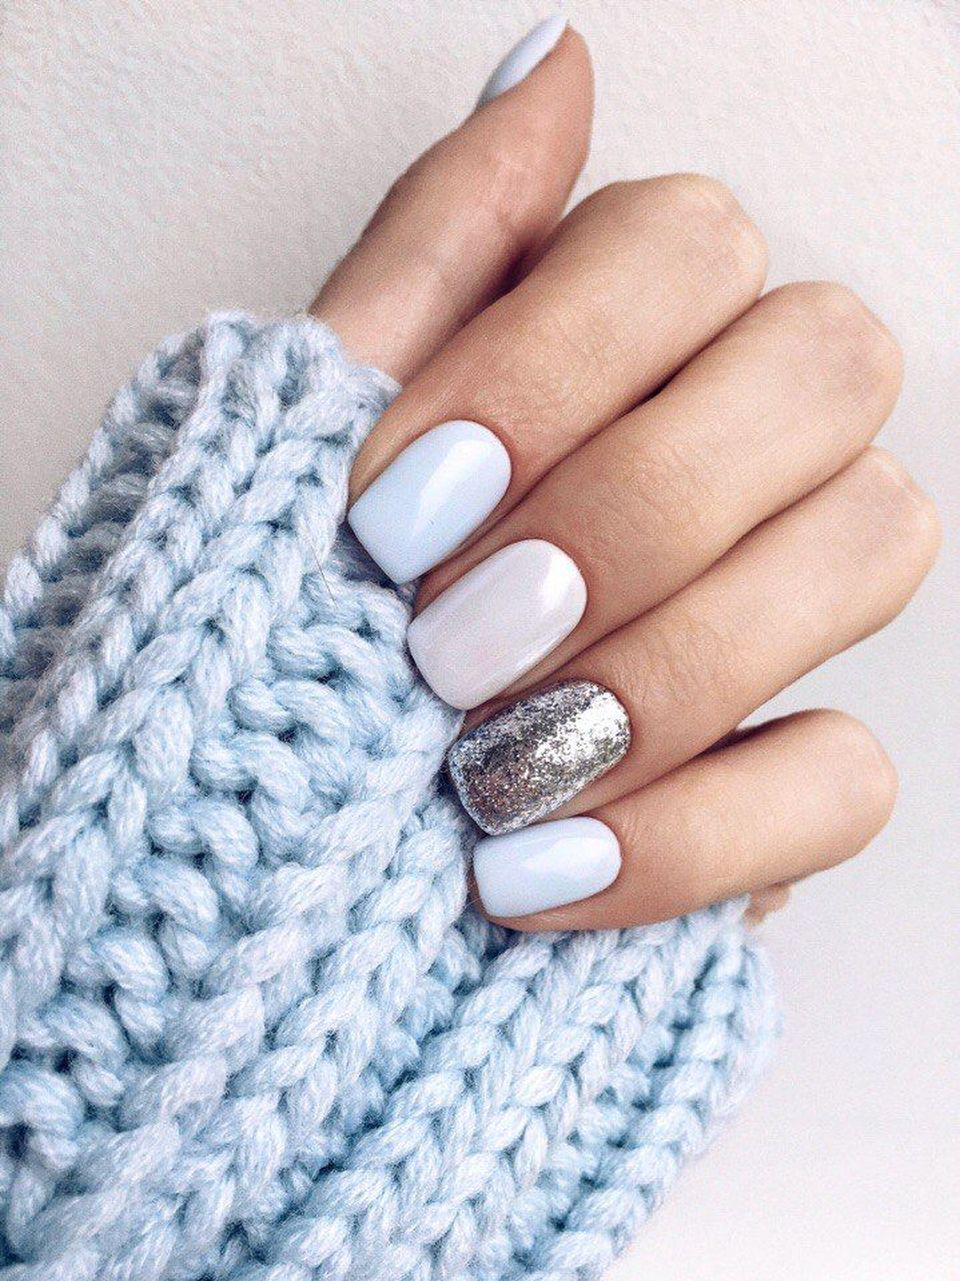 Sweet acrylic nails ideas for winter 55 - Fashion Best